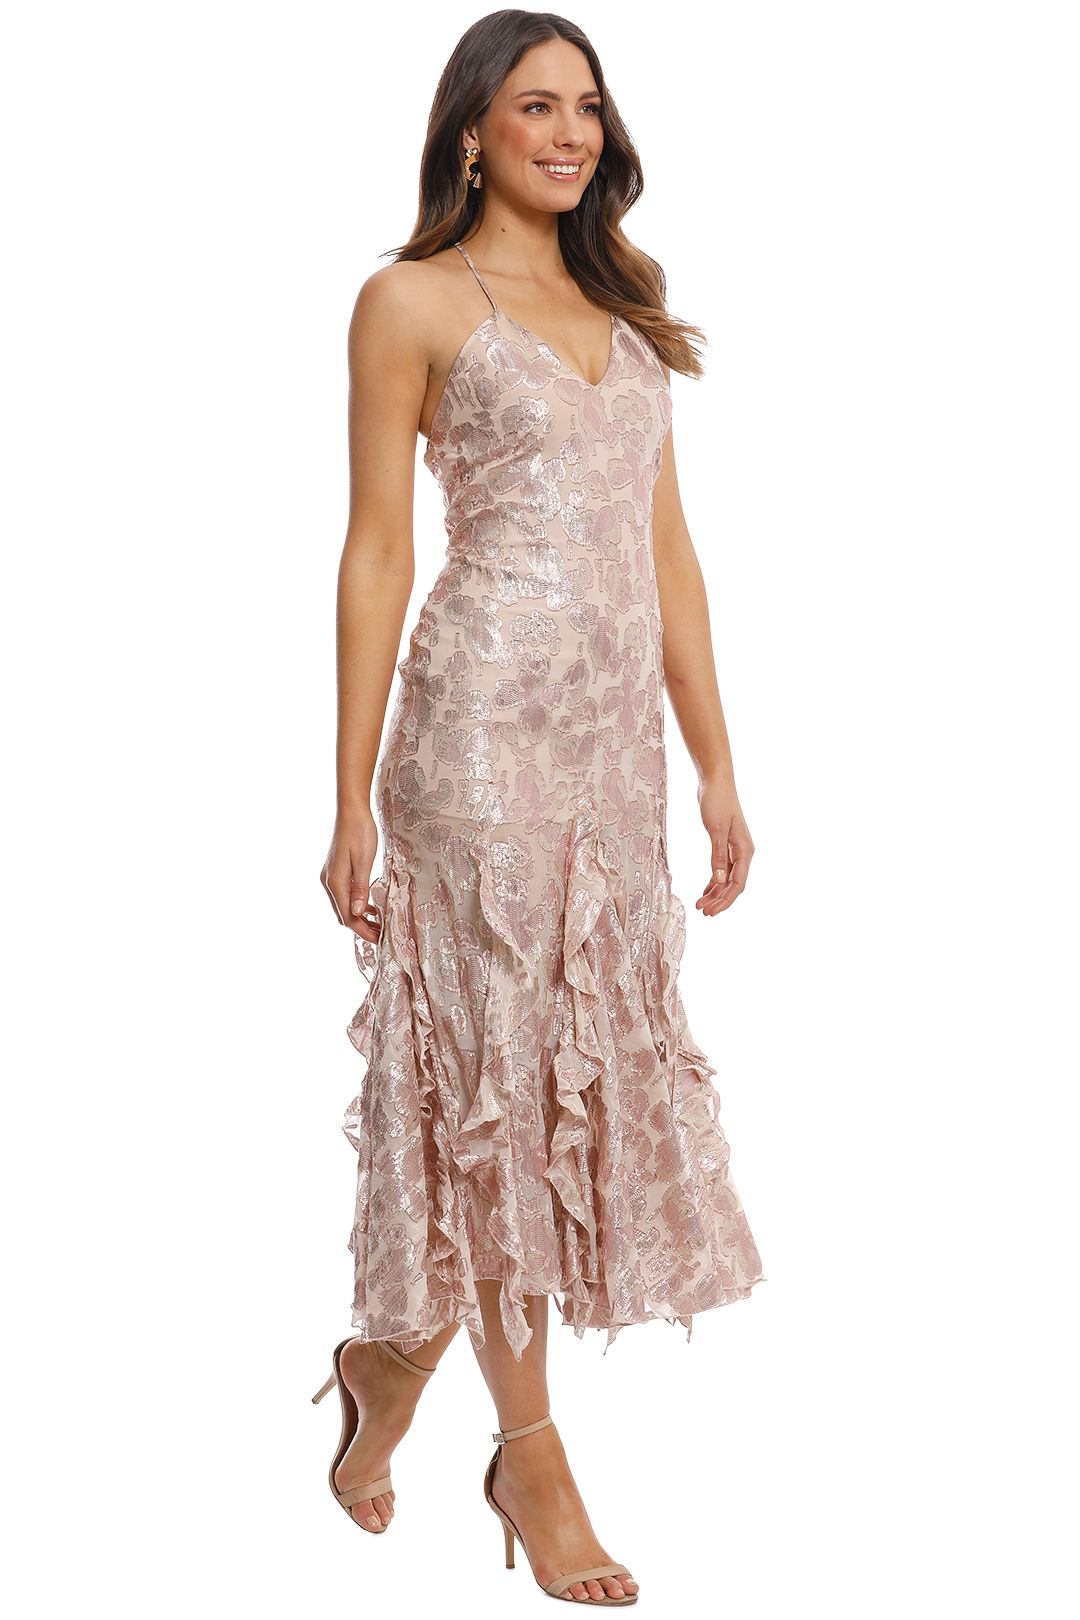 Alice McCall - Best of You Dress - Champagne - Side